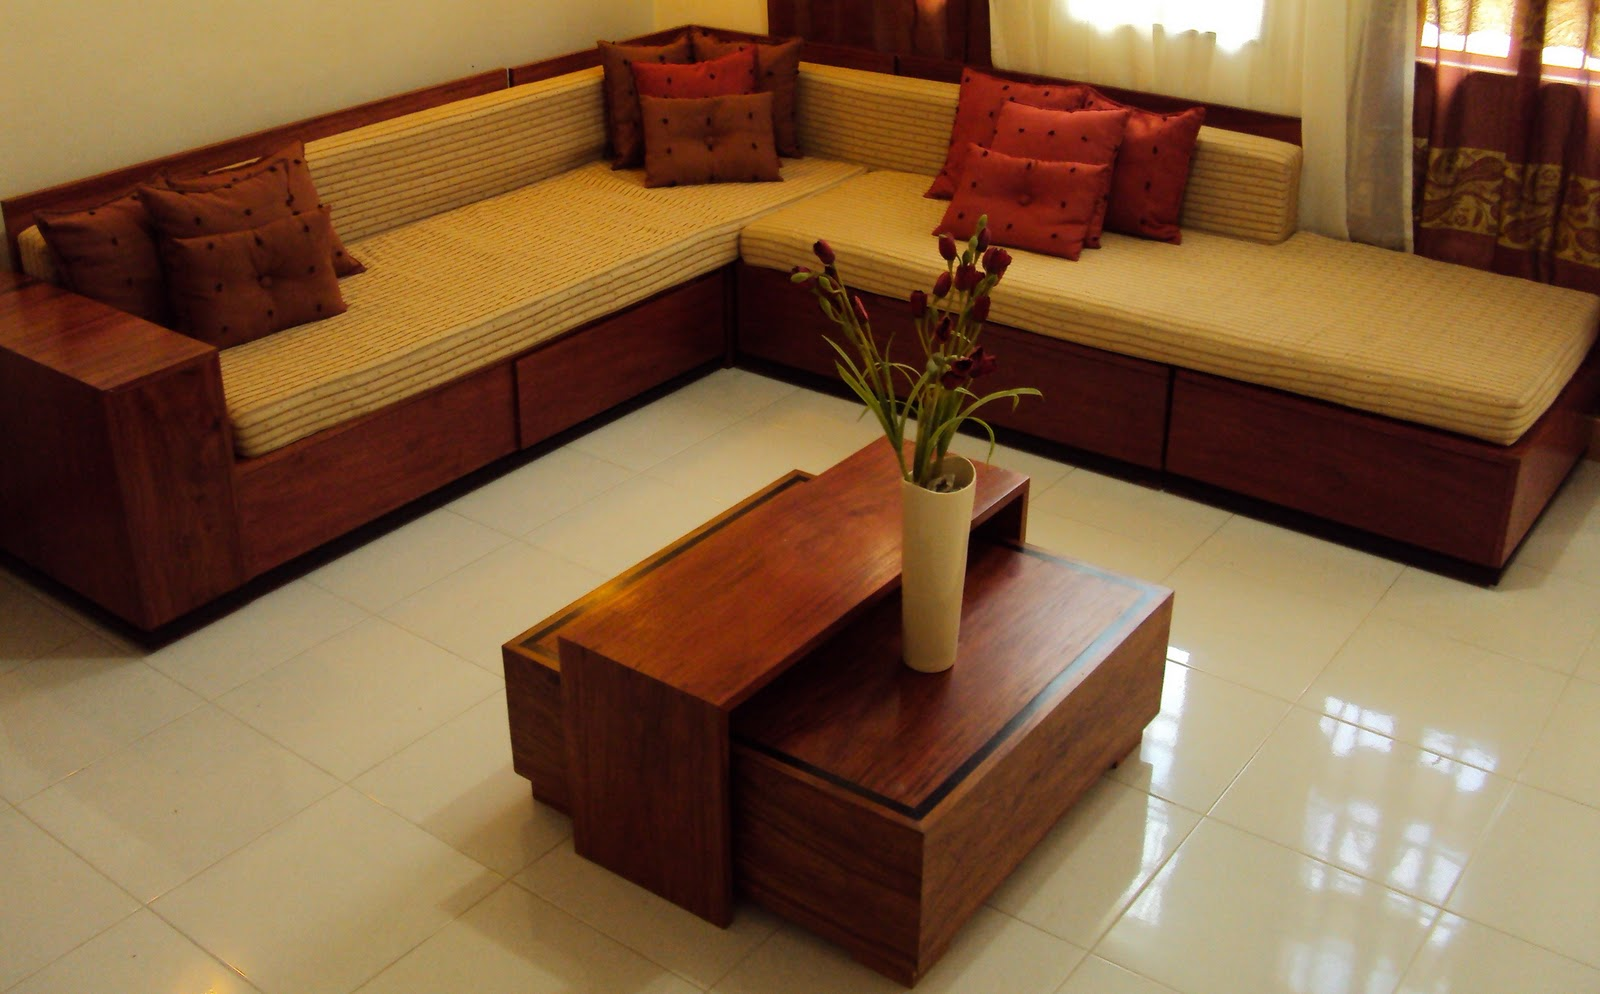 narra furniture design pilotschoolbanyuwangi com - Modern Furniture Philippines